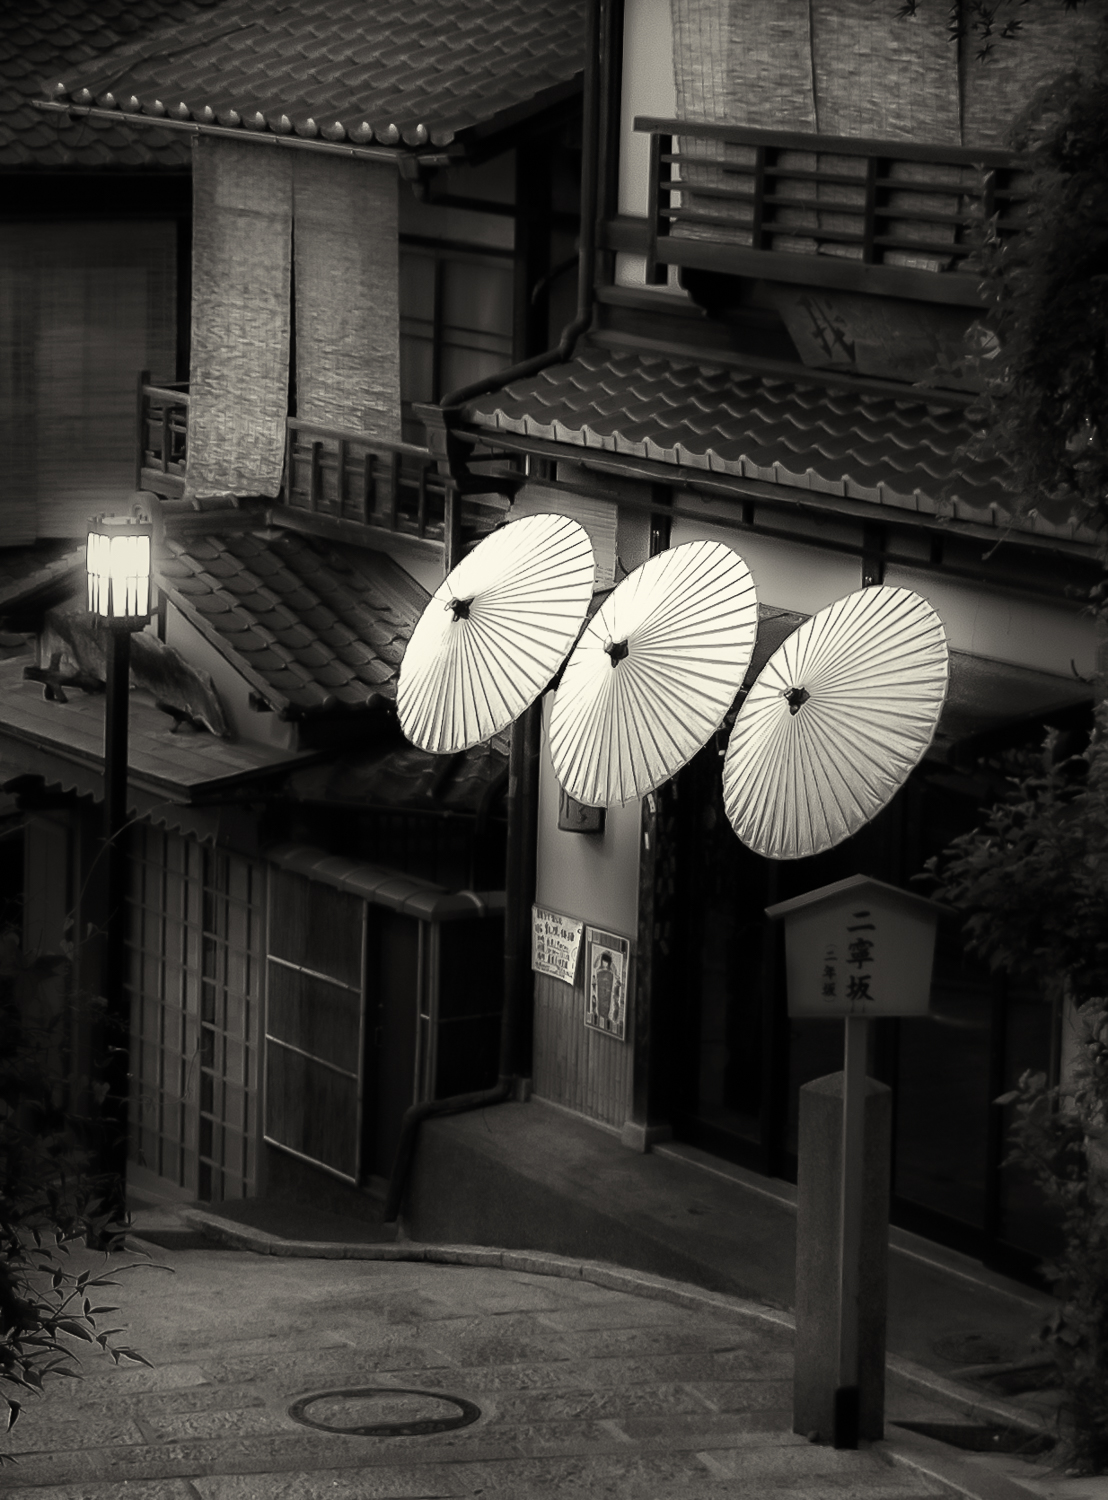 Street Scene, Gion District, Kyoto, Japan, 2010